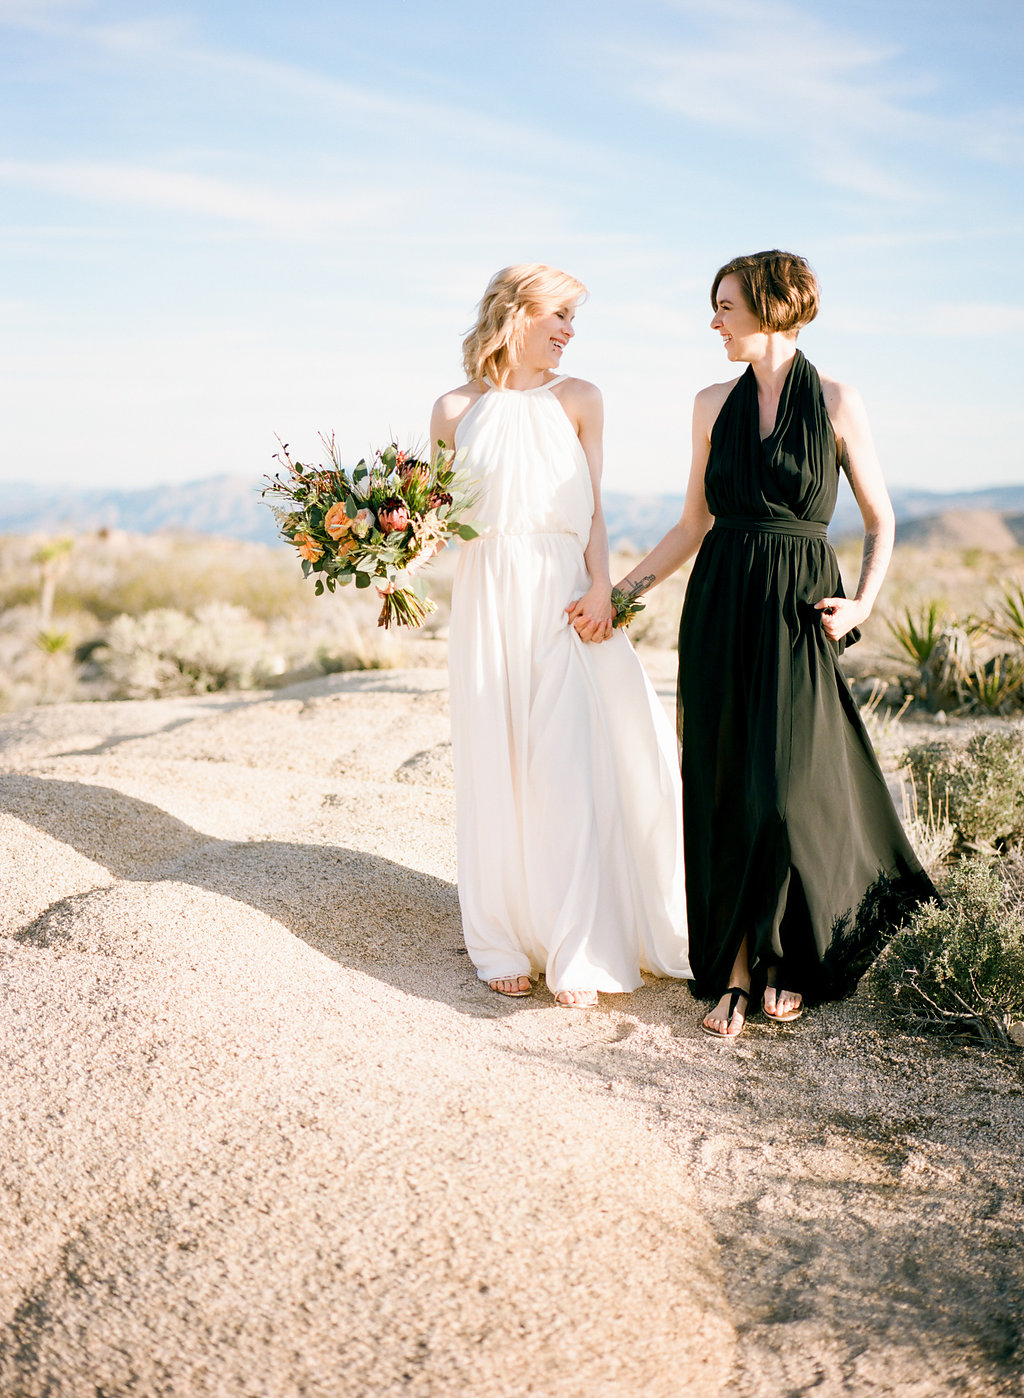 Jessica Schilling Wedding Photography holding hands by sand dune